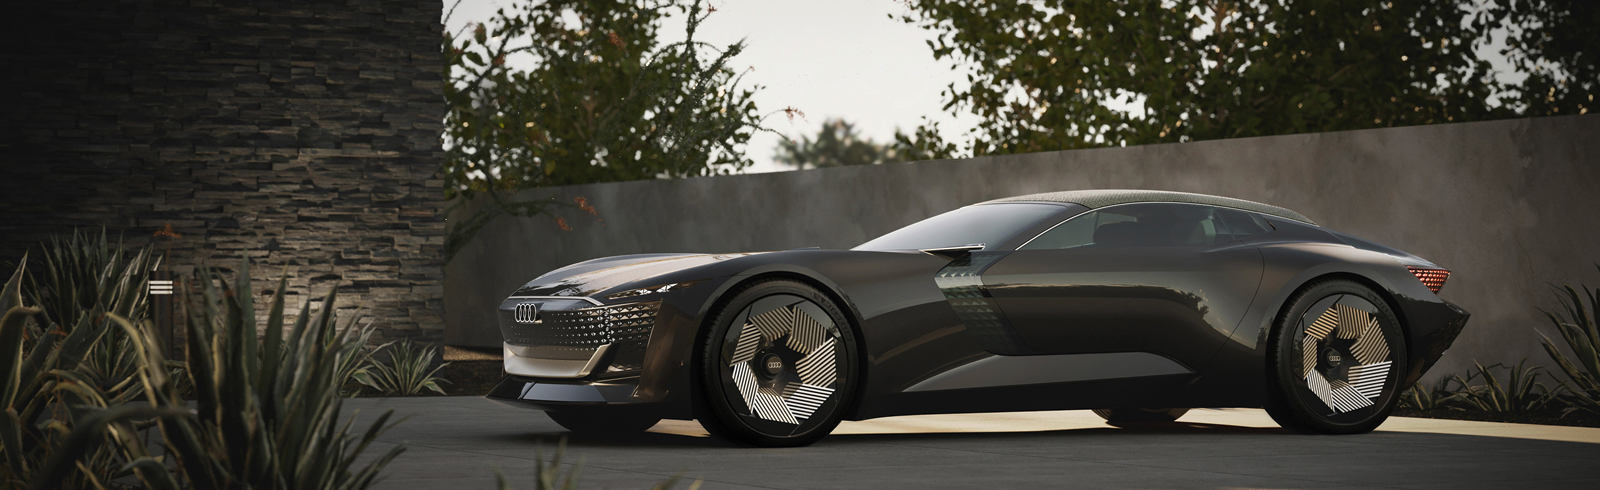 The Audi skysphere concept roadster is unveiled